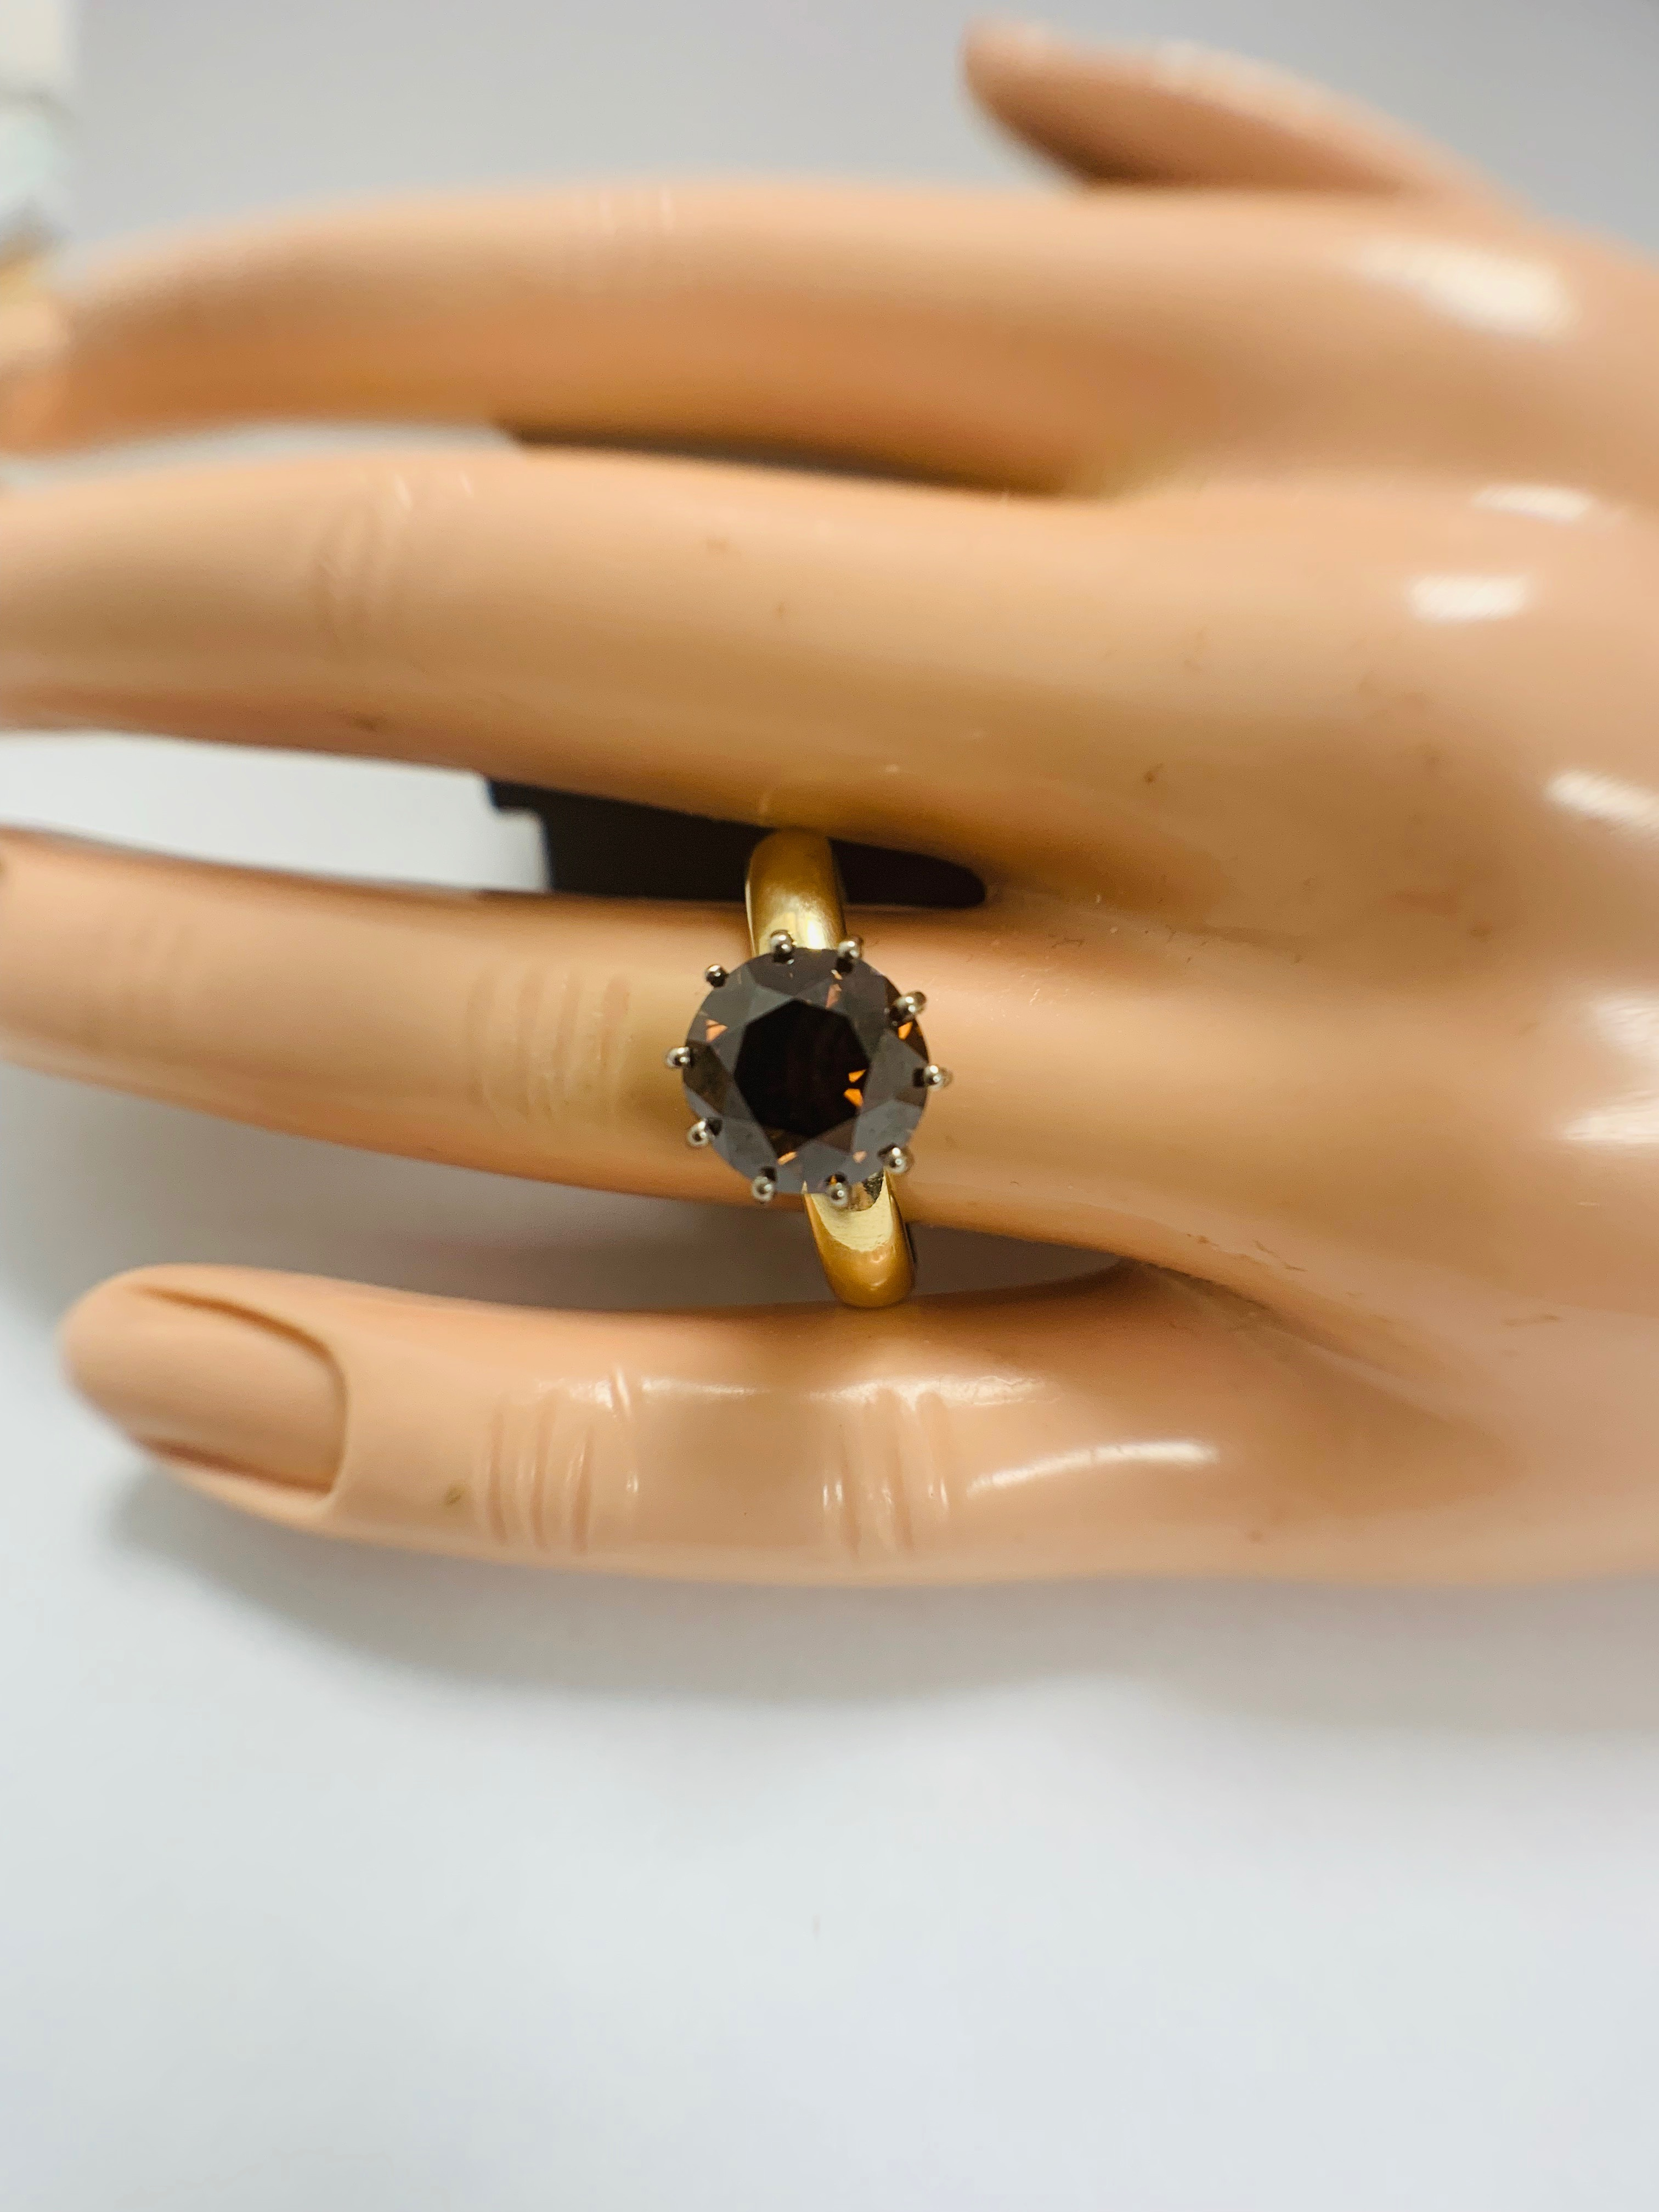 18ct Yellow Gold Diamond ring featuring centre, round brilliant cut, deep orangey brown Diamond (3.3 - Image 11 of 13